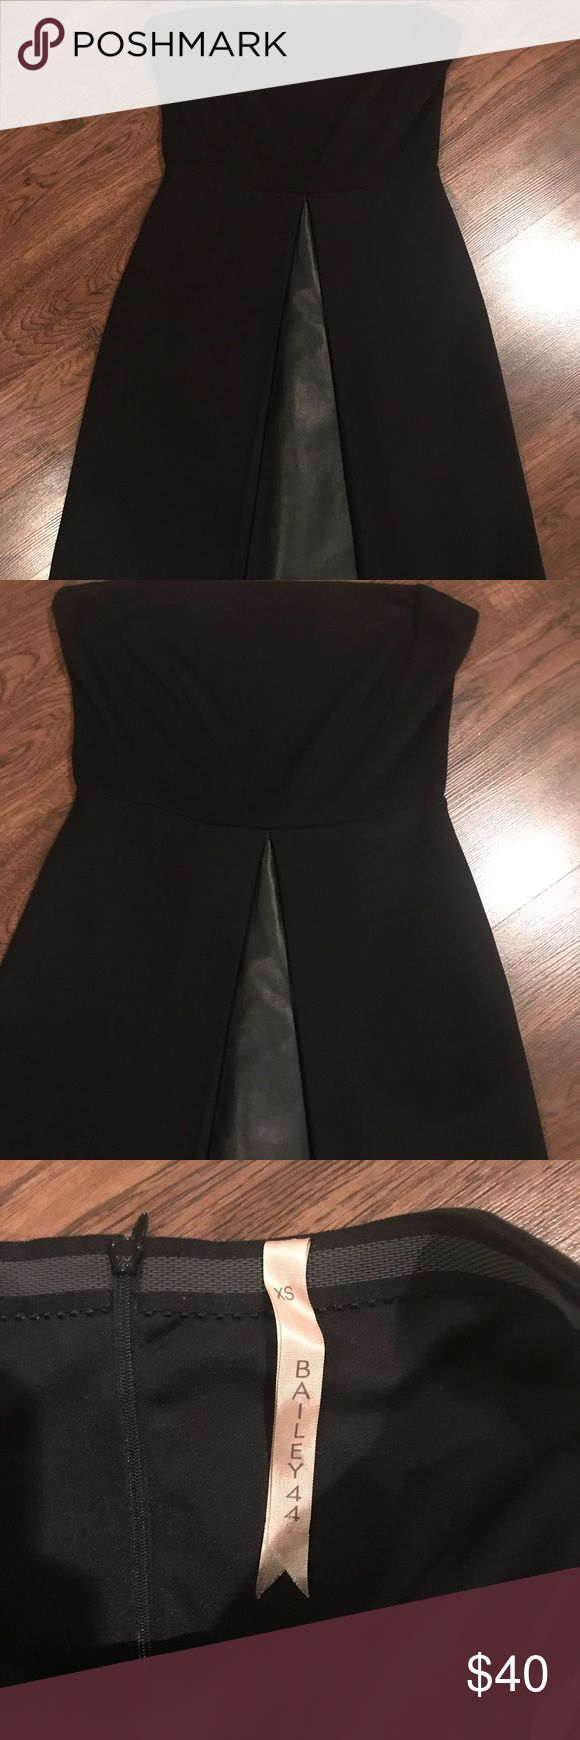 Bailey 44 cocktail strapless dress XS Never worn! Time to clean out closet!  From Saks  Faux leather details  Can dress up or down  XS Bailey 44 Dresses Strapless